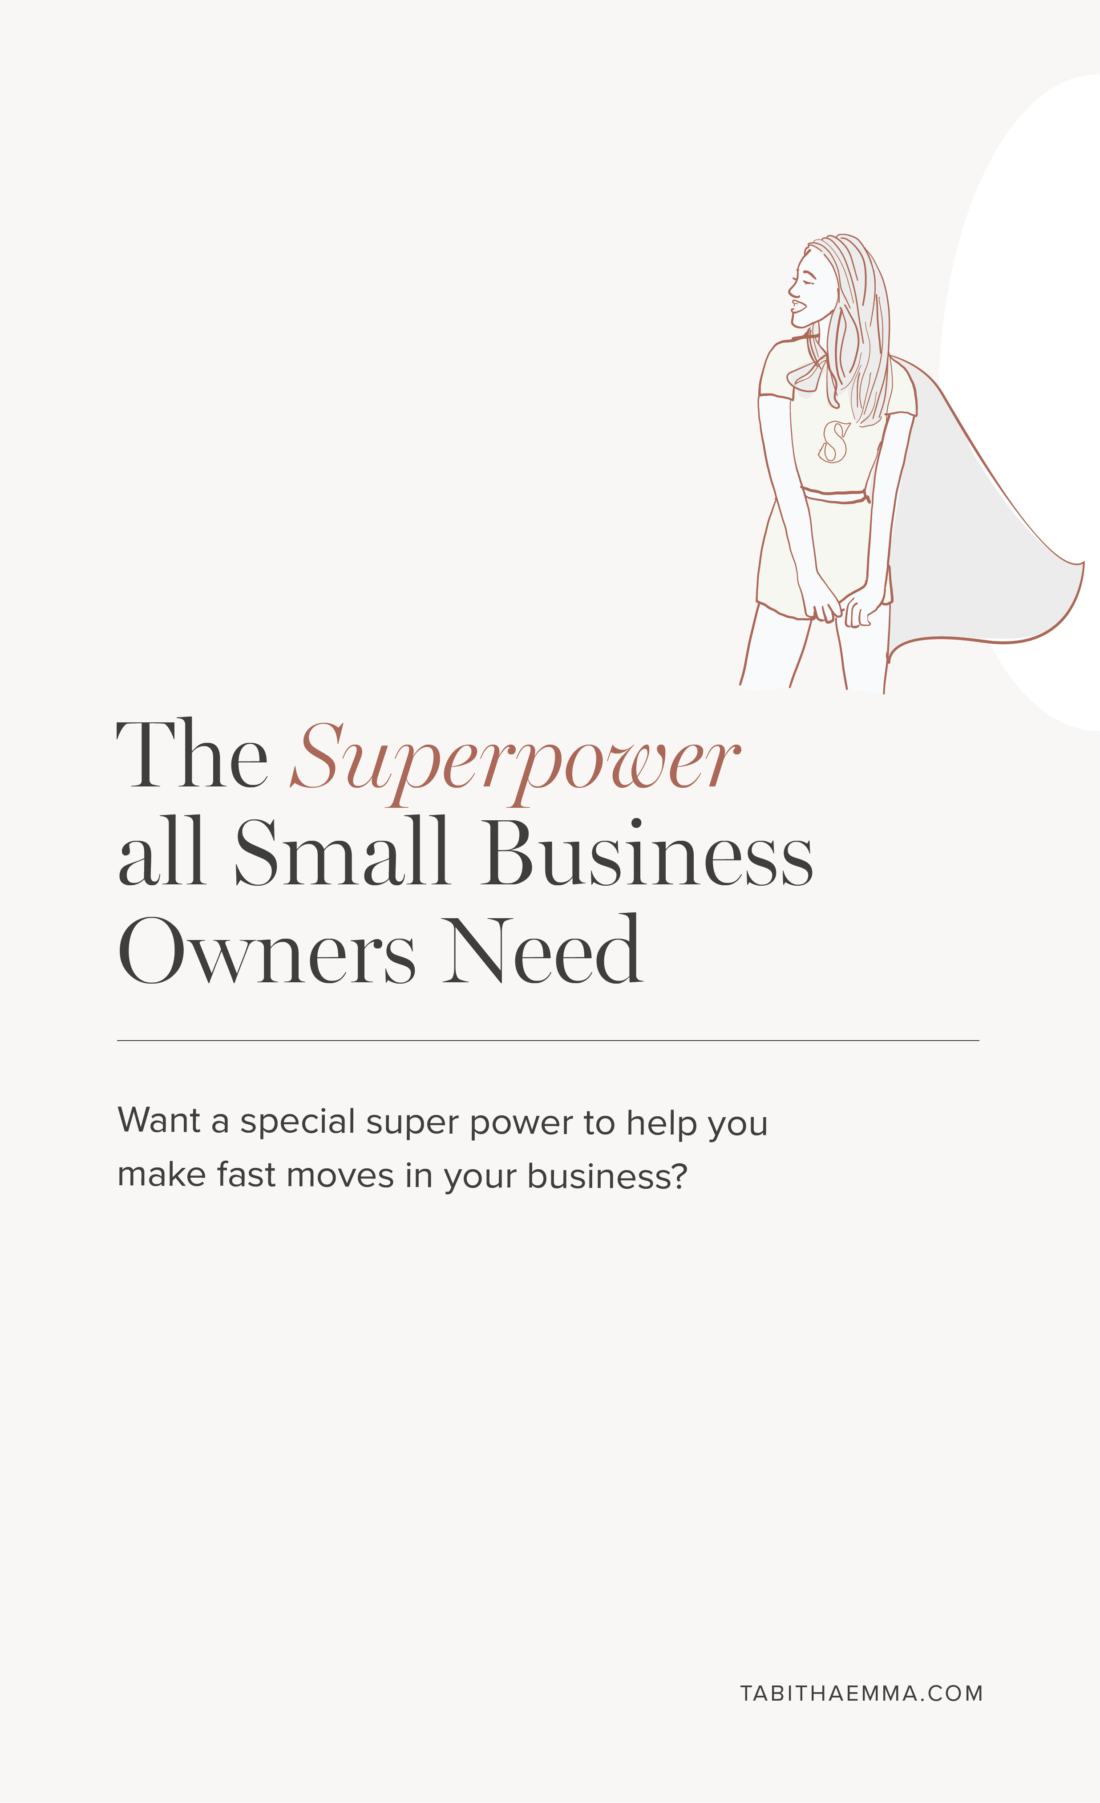 superpower skill graphic design business